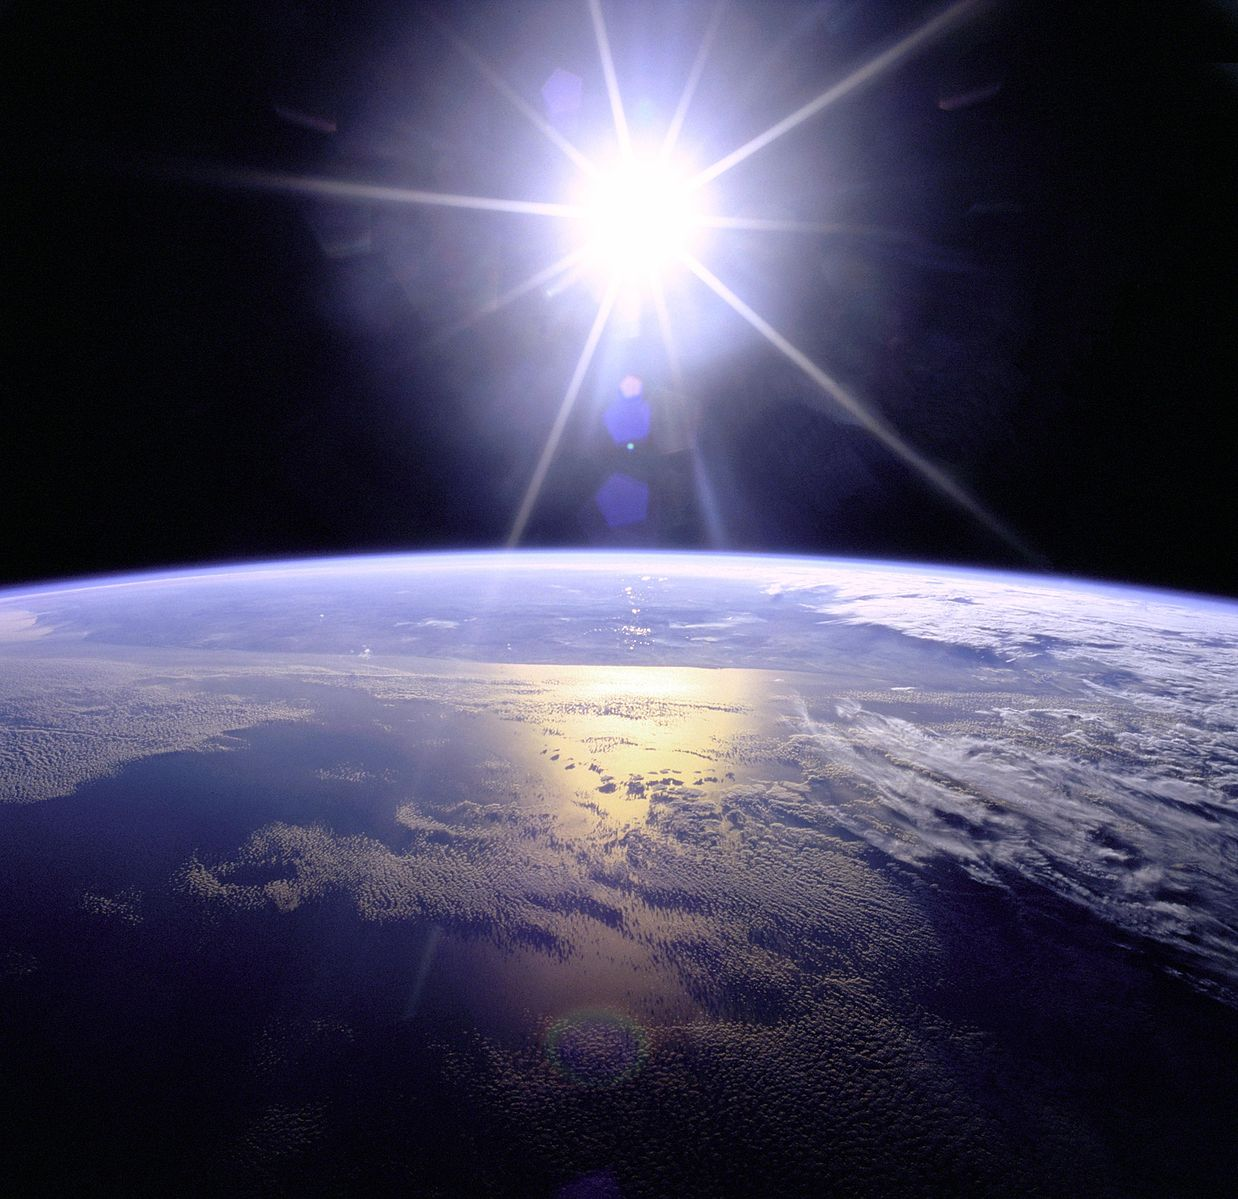 NASA shot of sunburst above the Earth